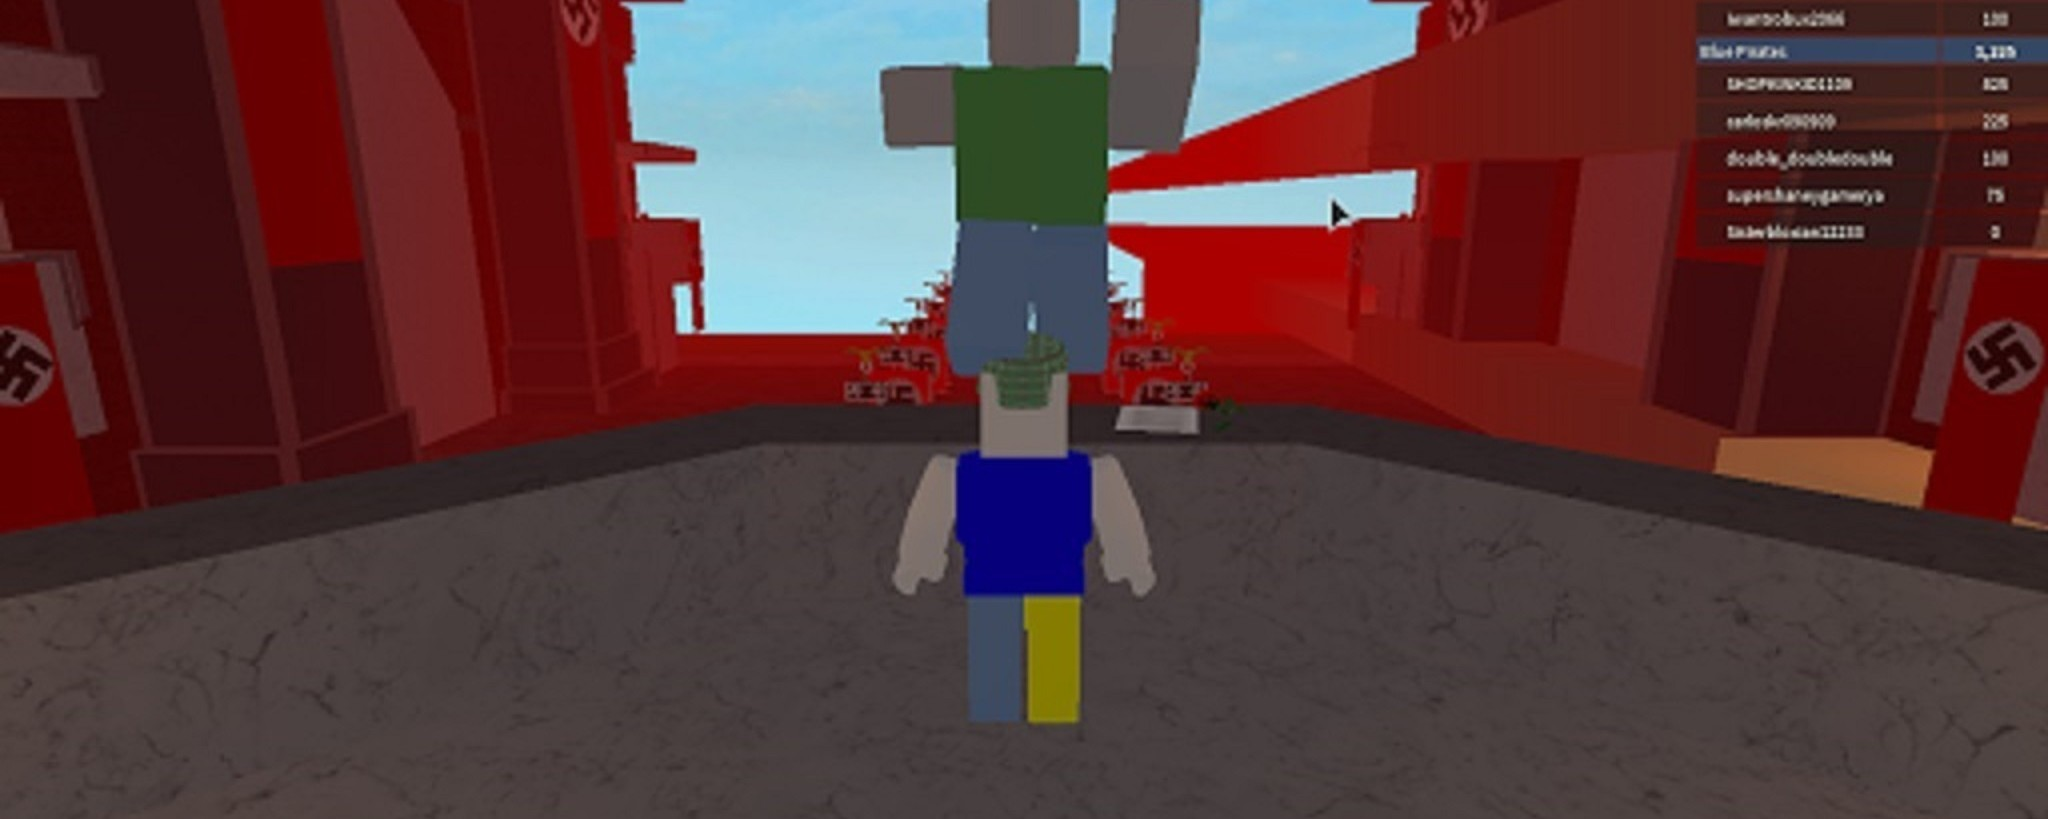 Roblox Pizza Place Script Porn And Swastikas Have Infiltrated Roblox